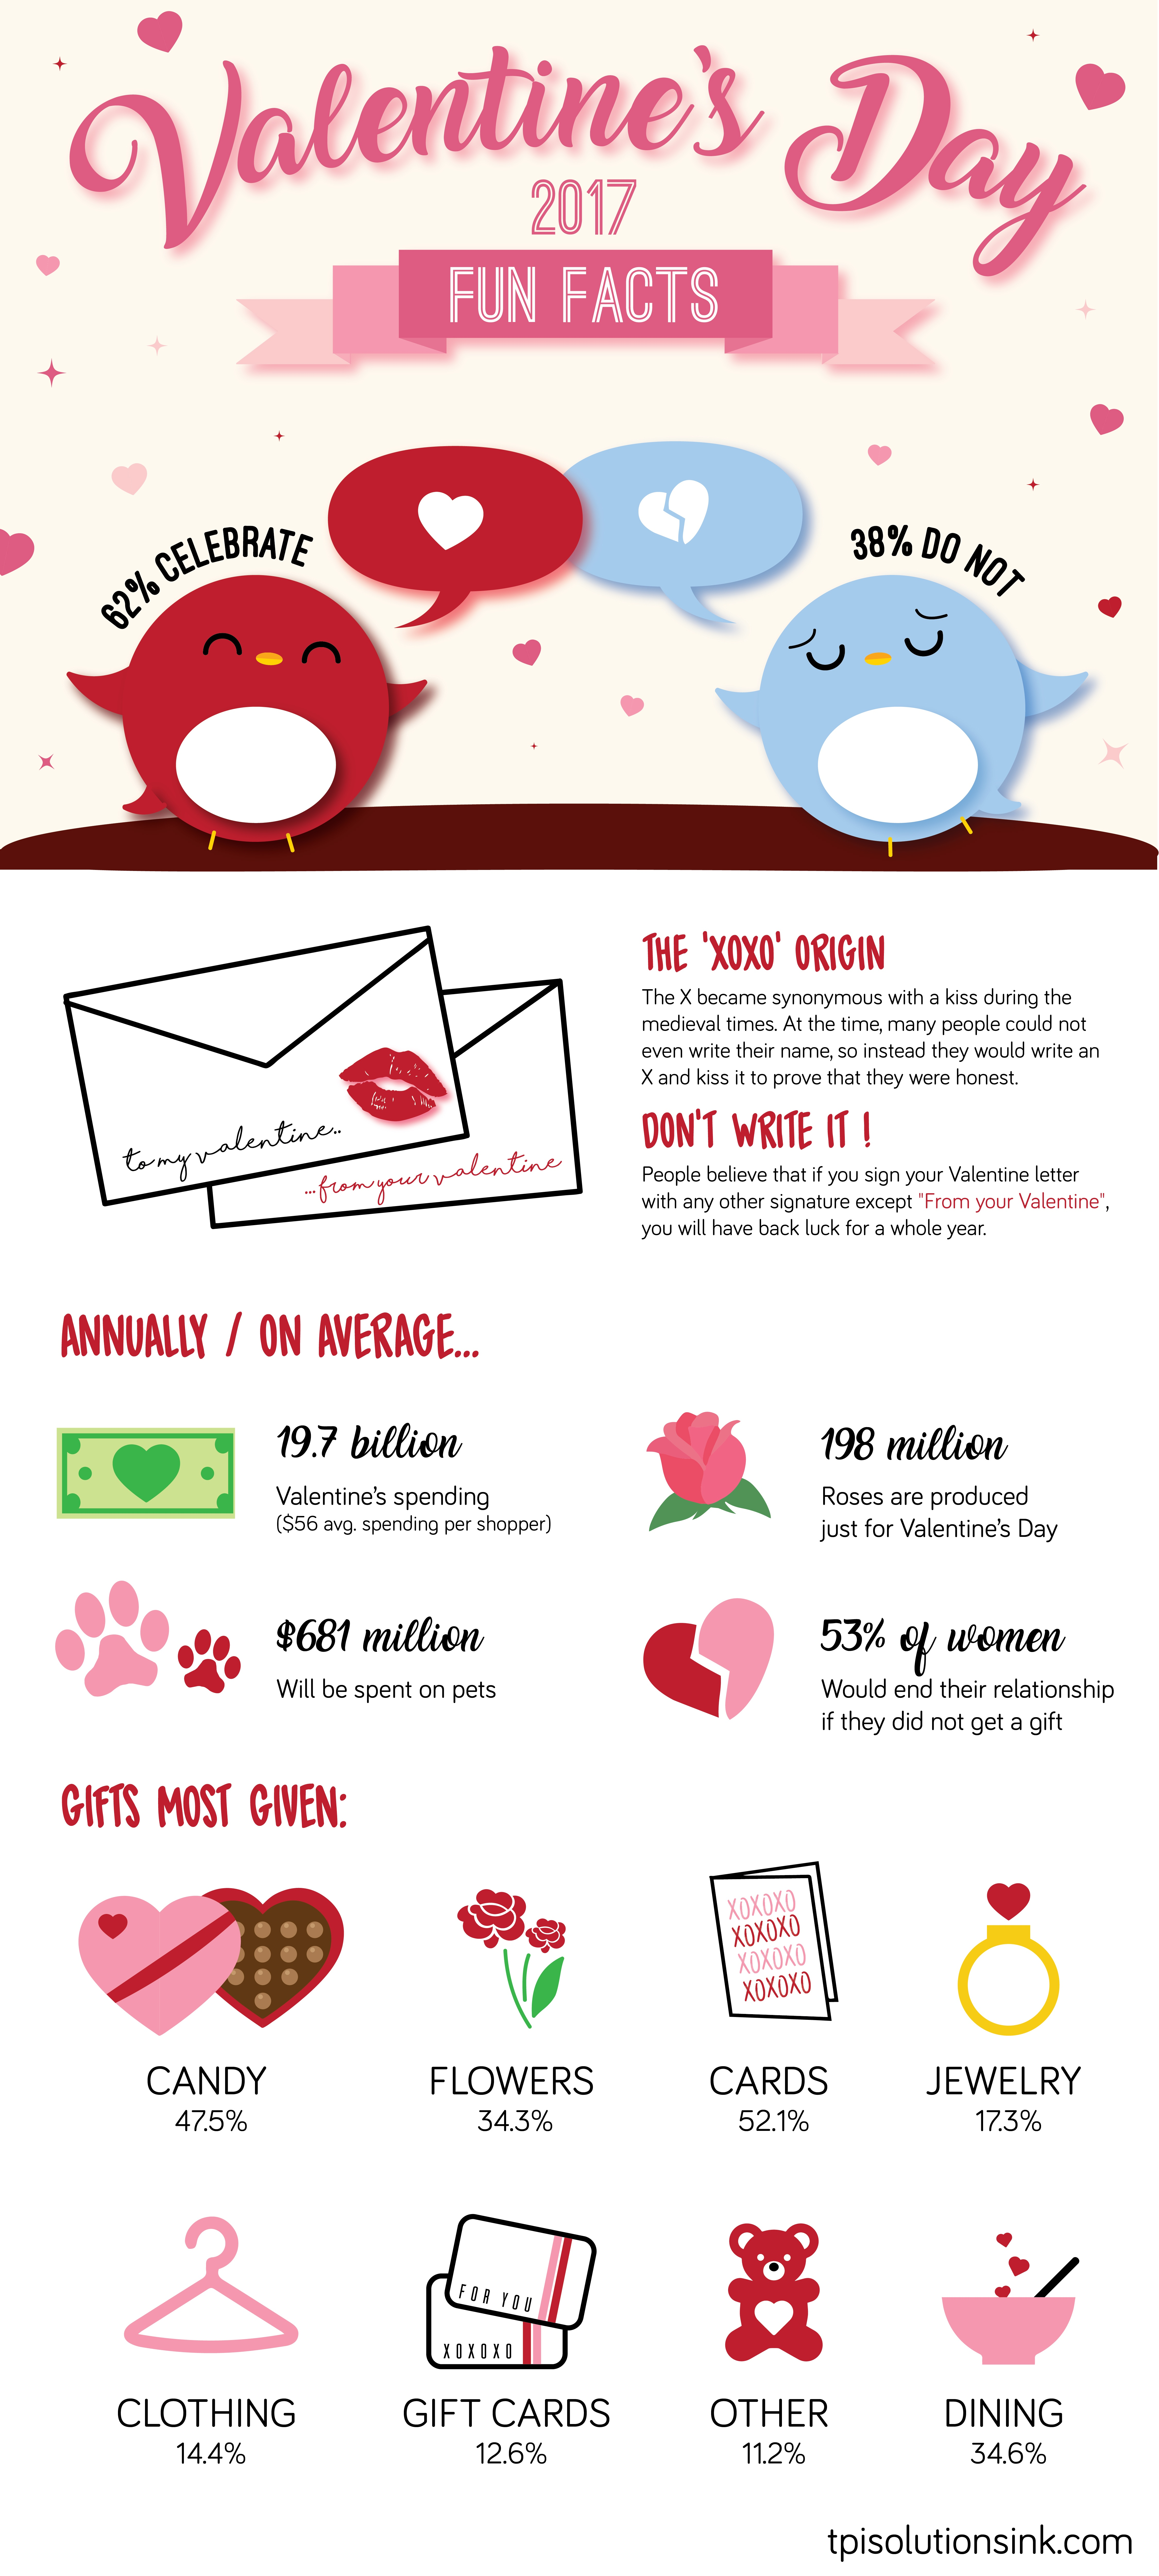 Valentine's Day Fun Facts Infographic